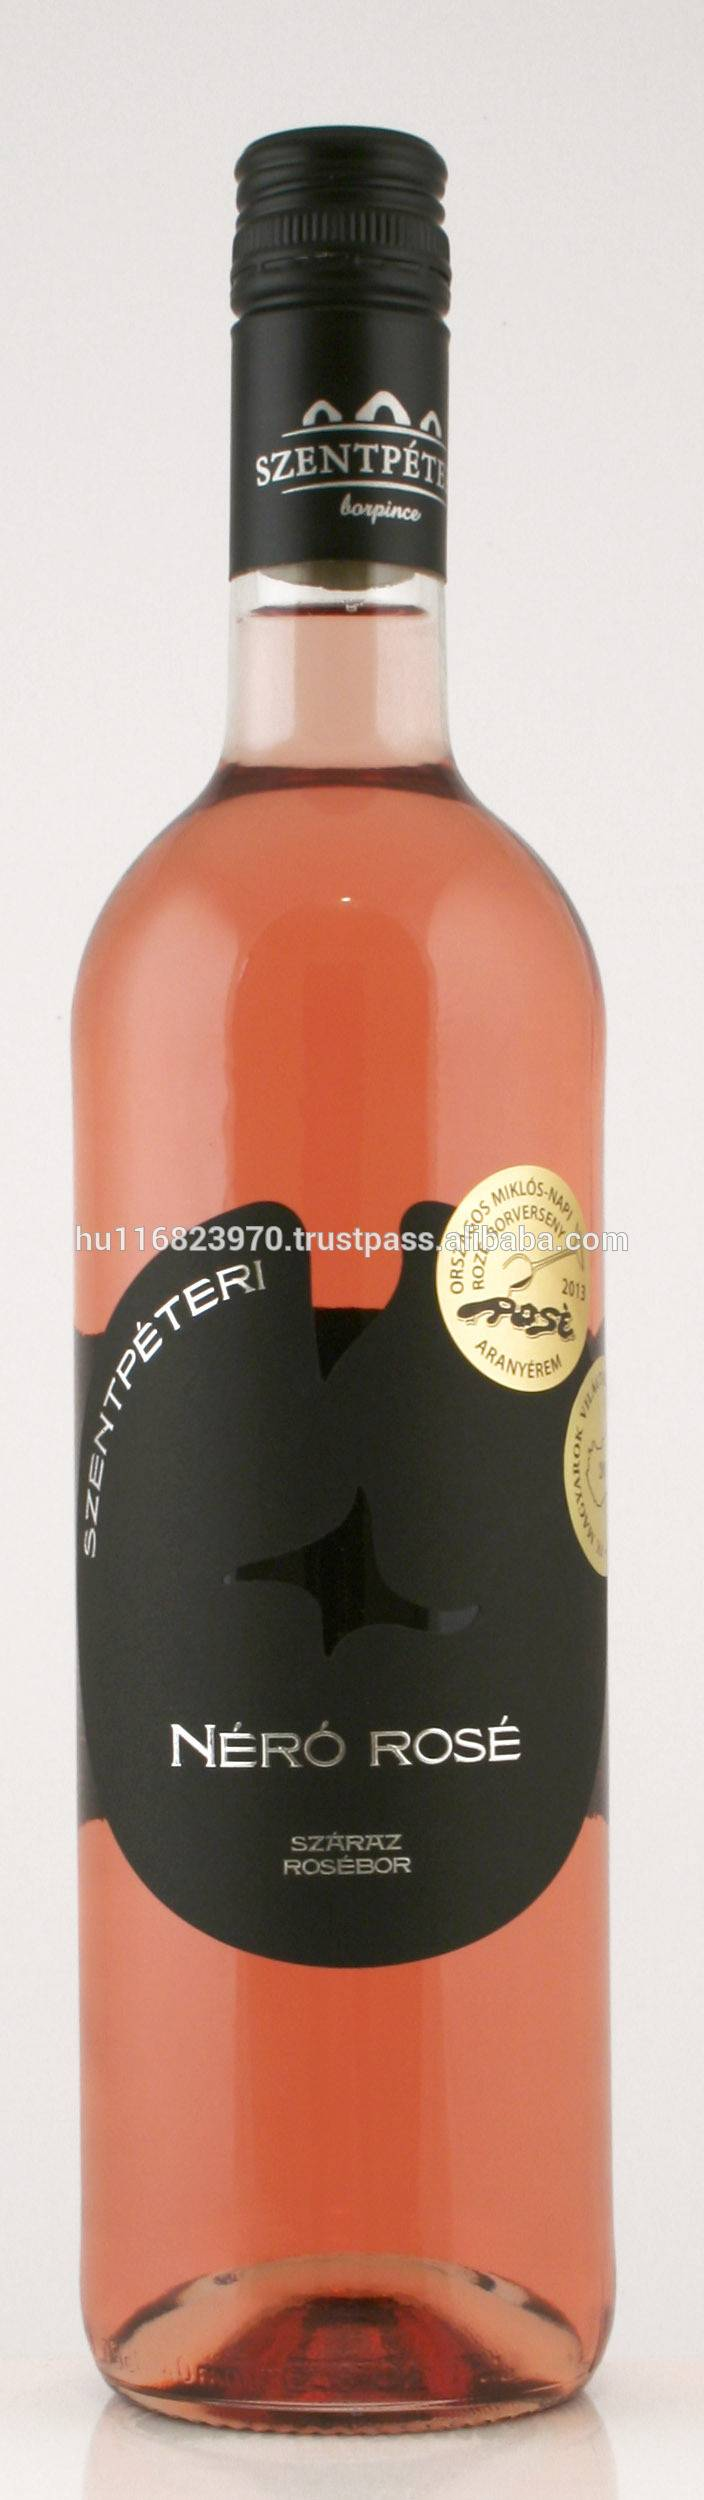 Best Nero Rose Wine from Hungary